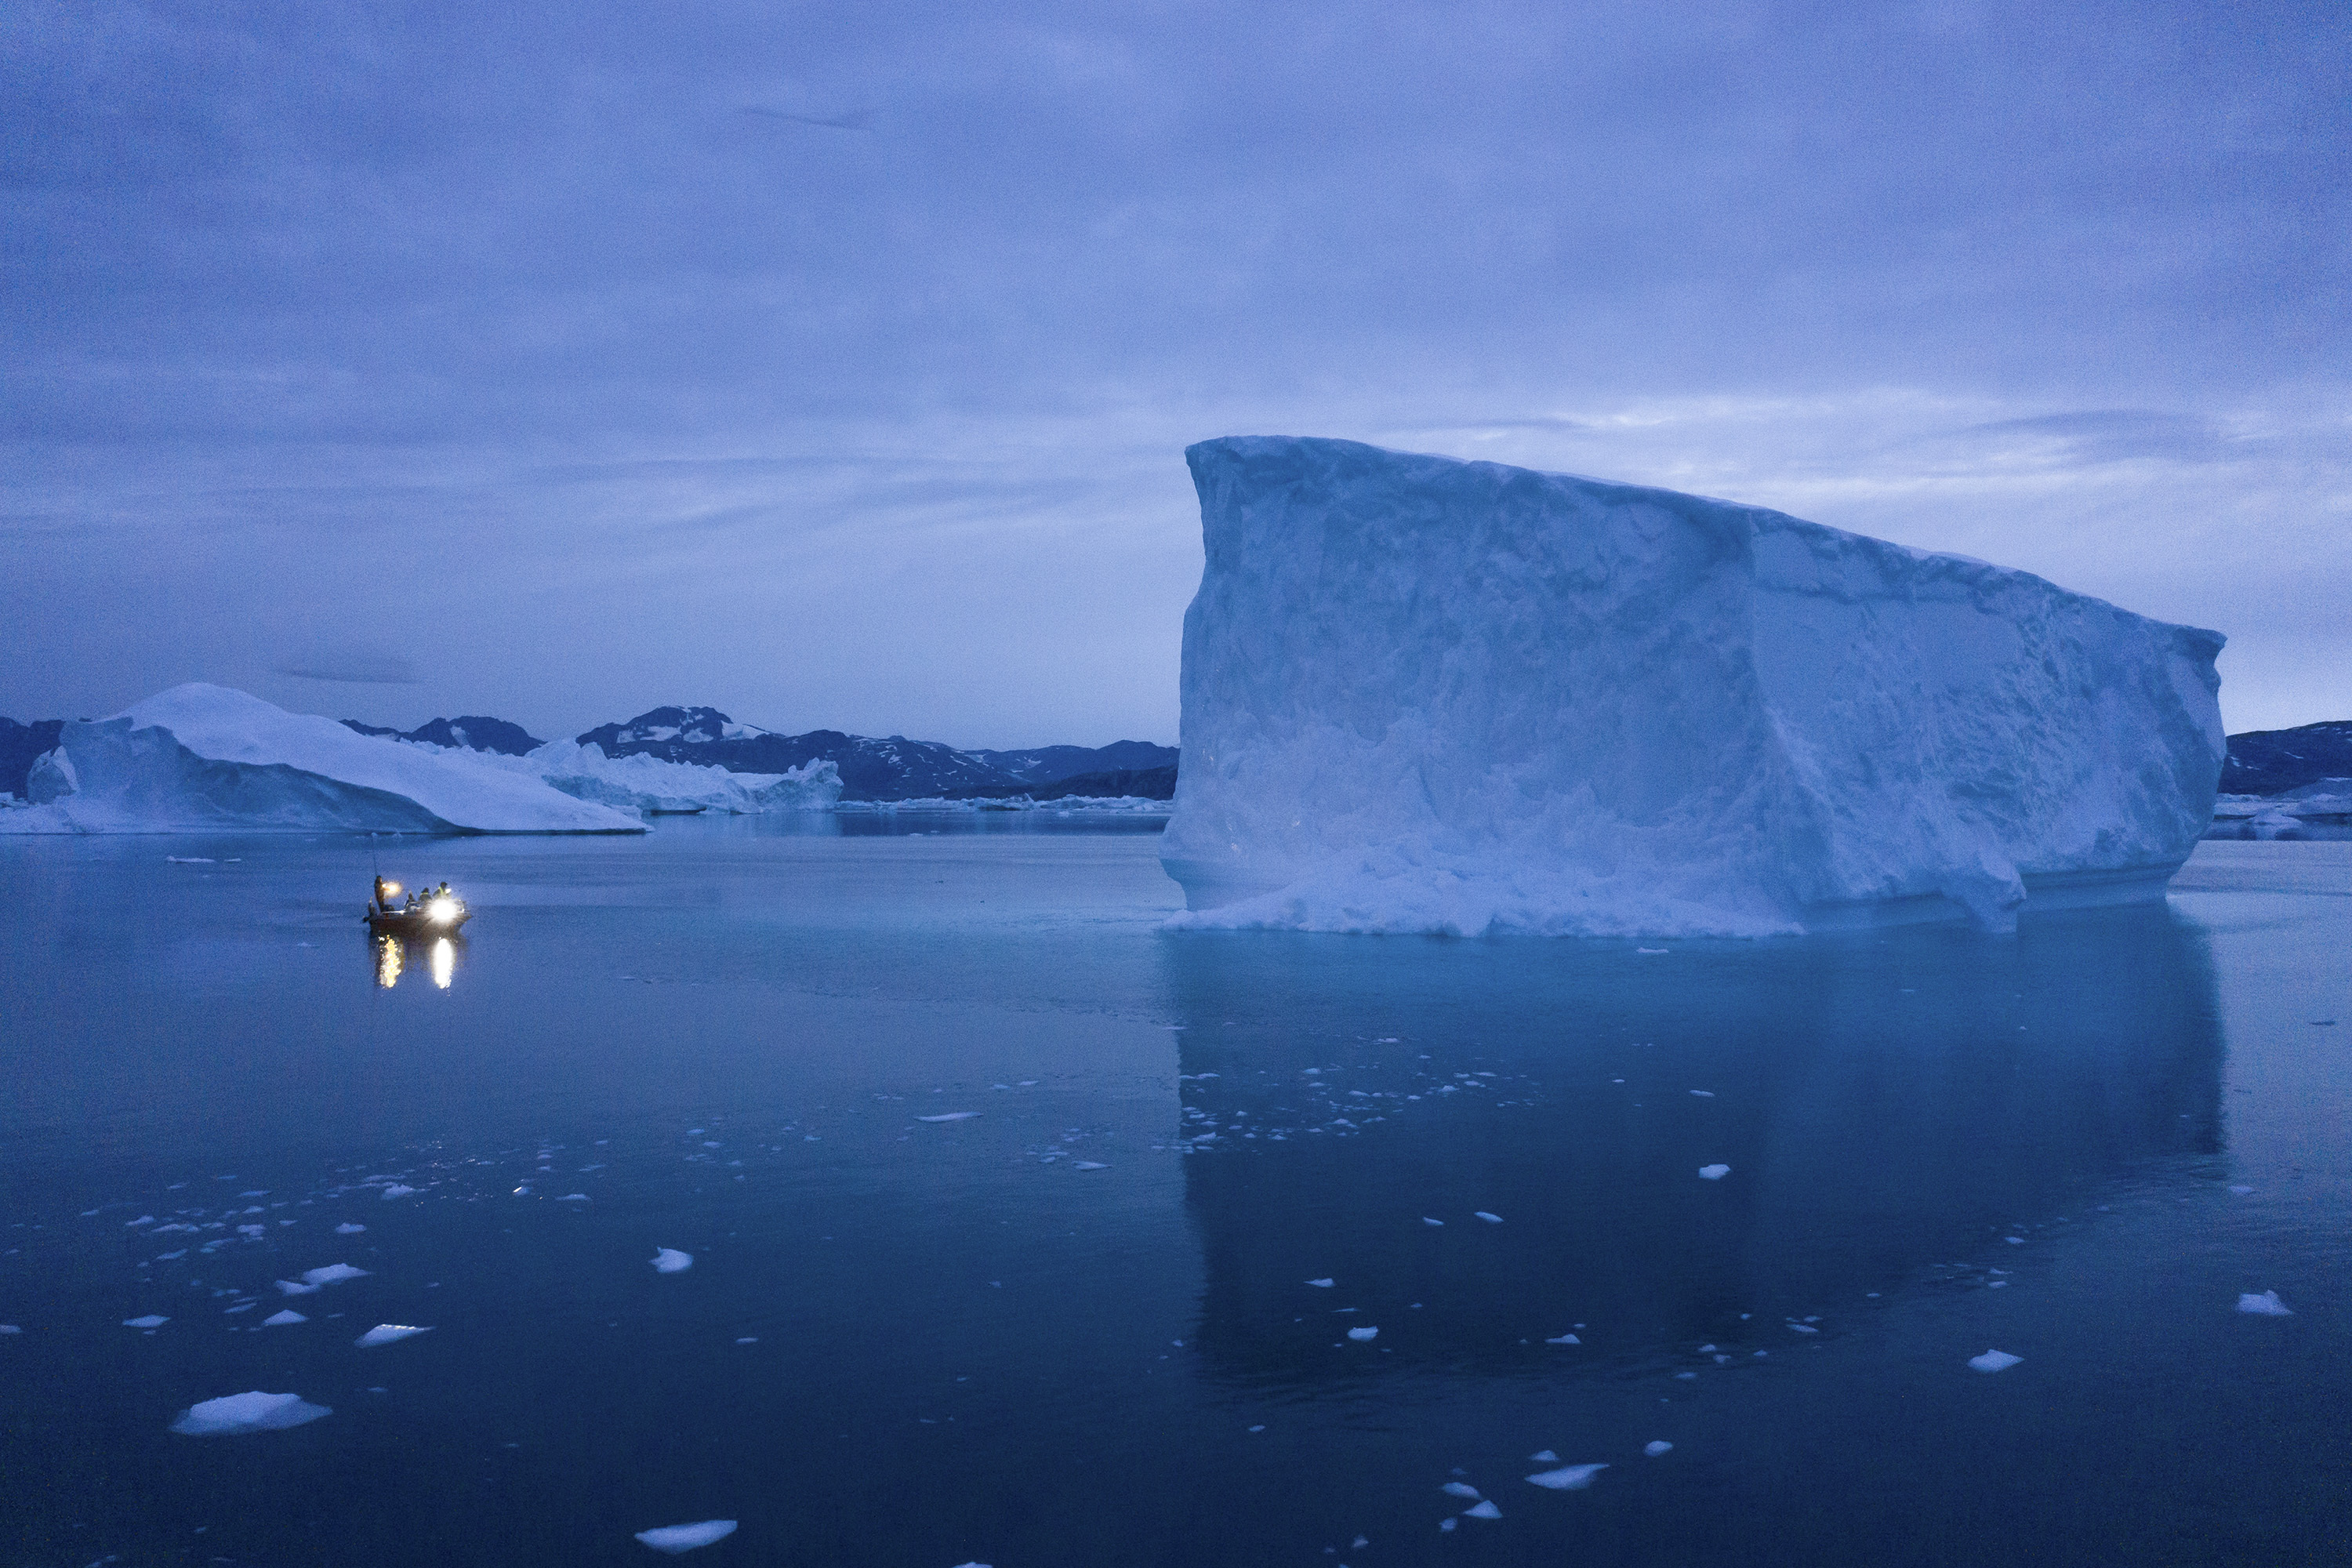 'End of the planet' or Aladdin's cave? Climate change turns Arctic into strategic, economic hotspot